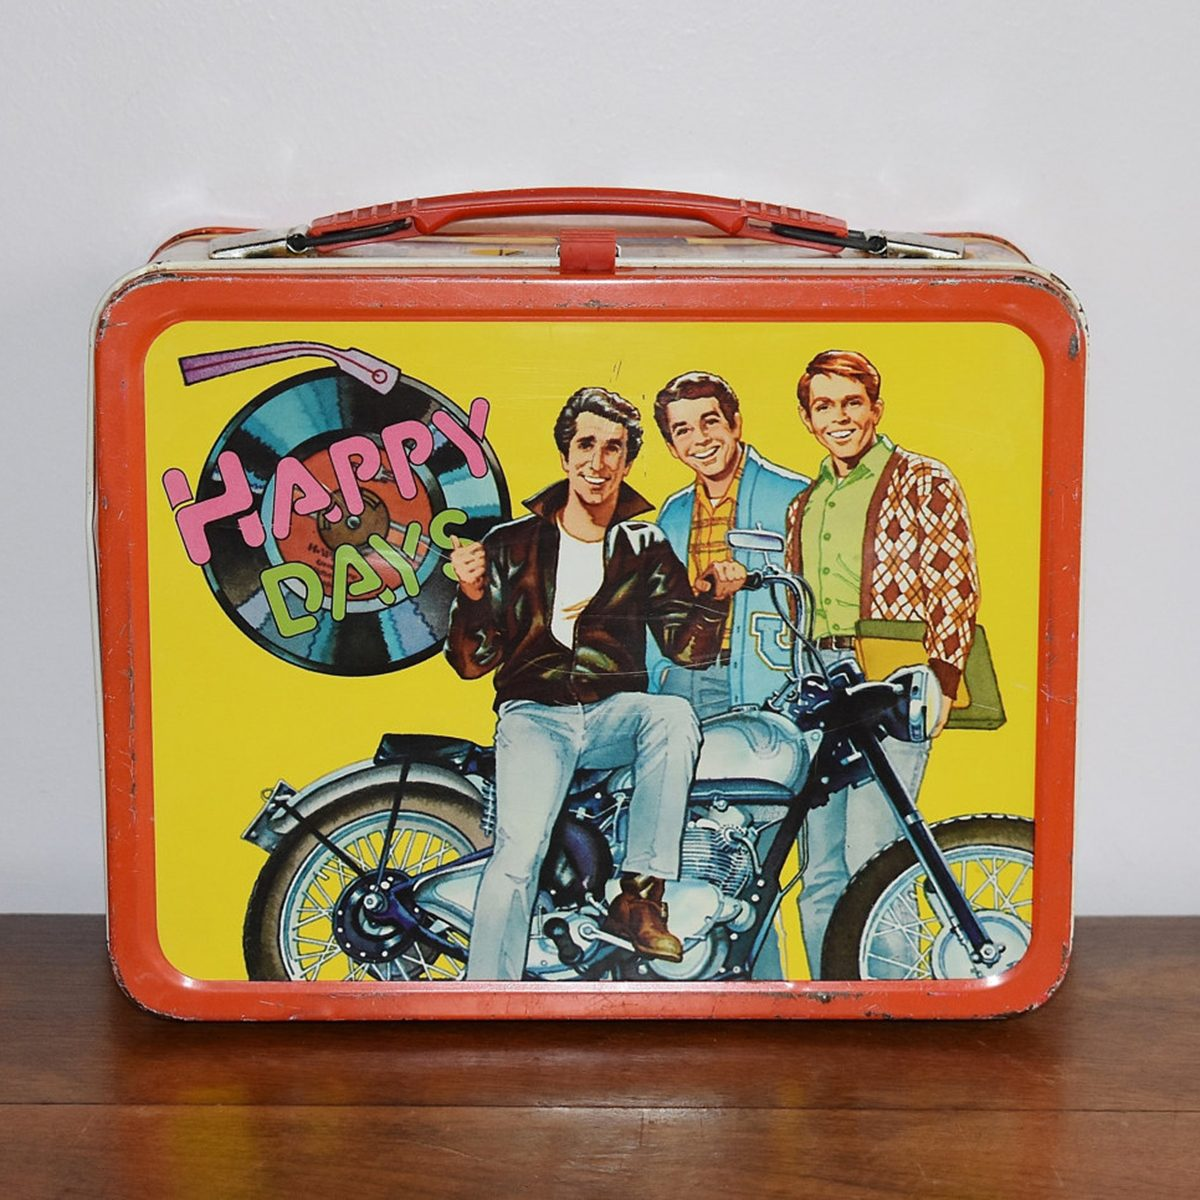 ad66c9d647c0 7 Vintage Lunch Boxes That'll Take You Back | Taste of Home